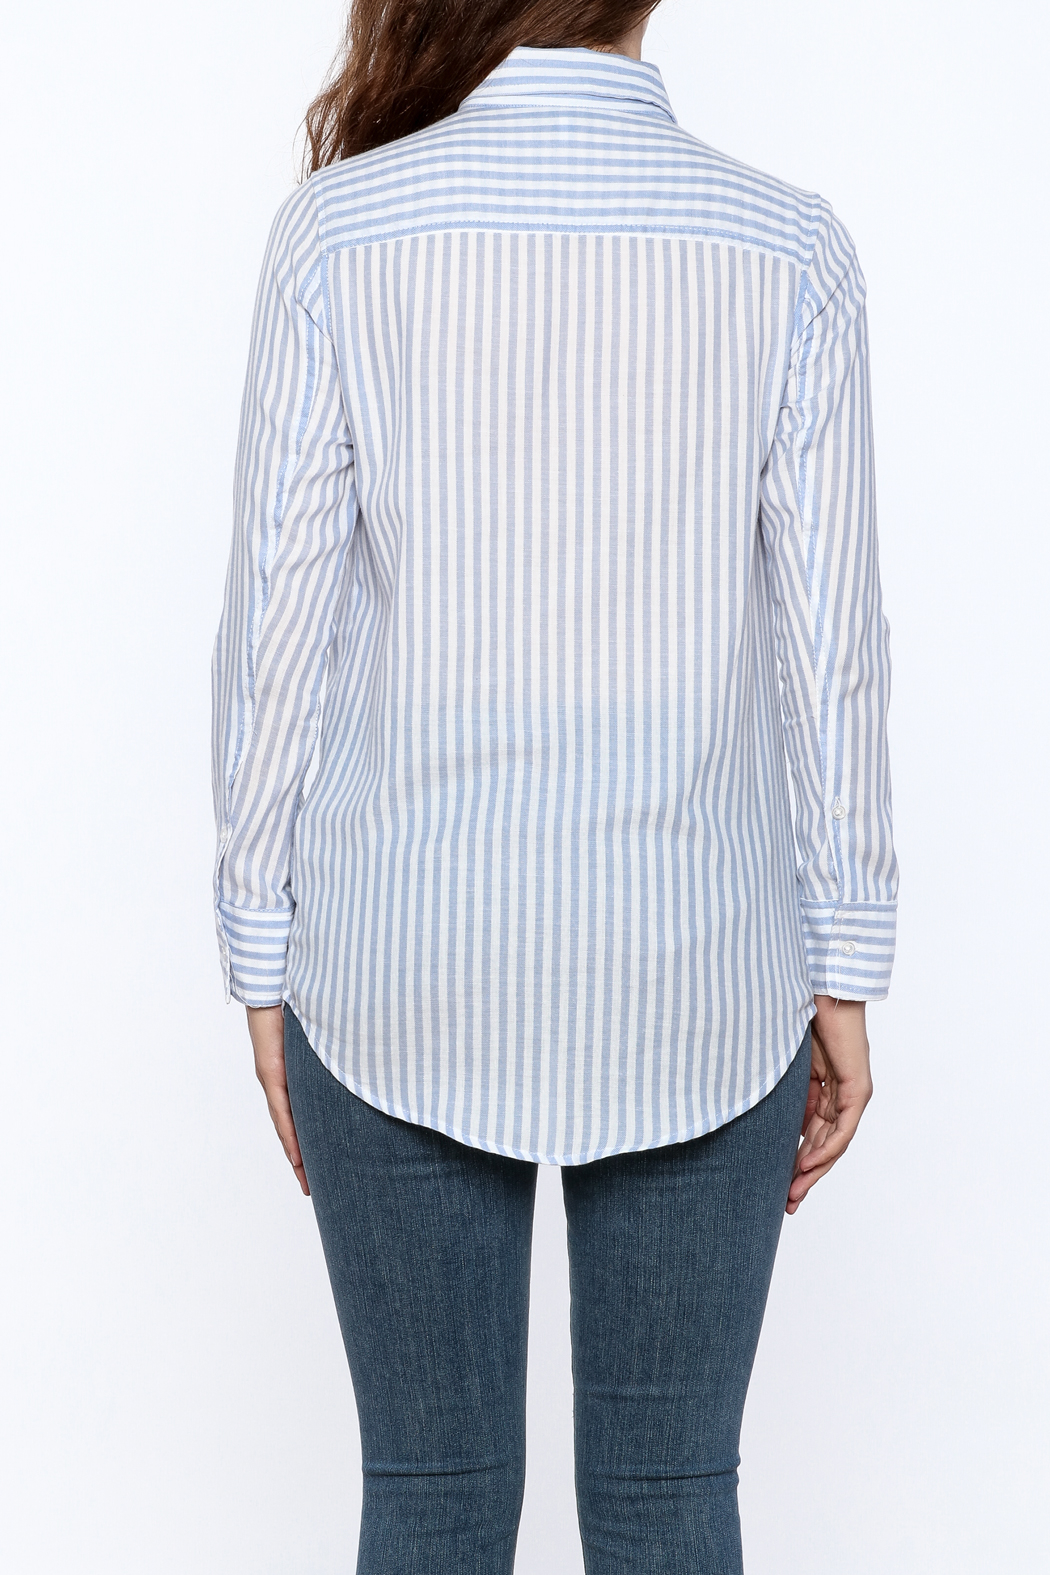 Cupcakes & Cashmere Stripe Button Down - Back Cropped Image